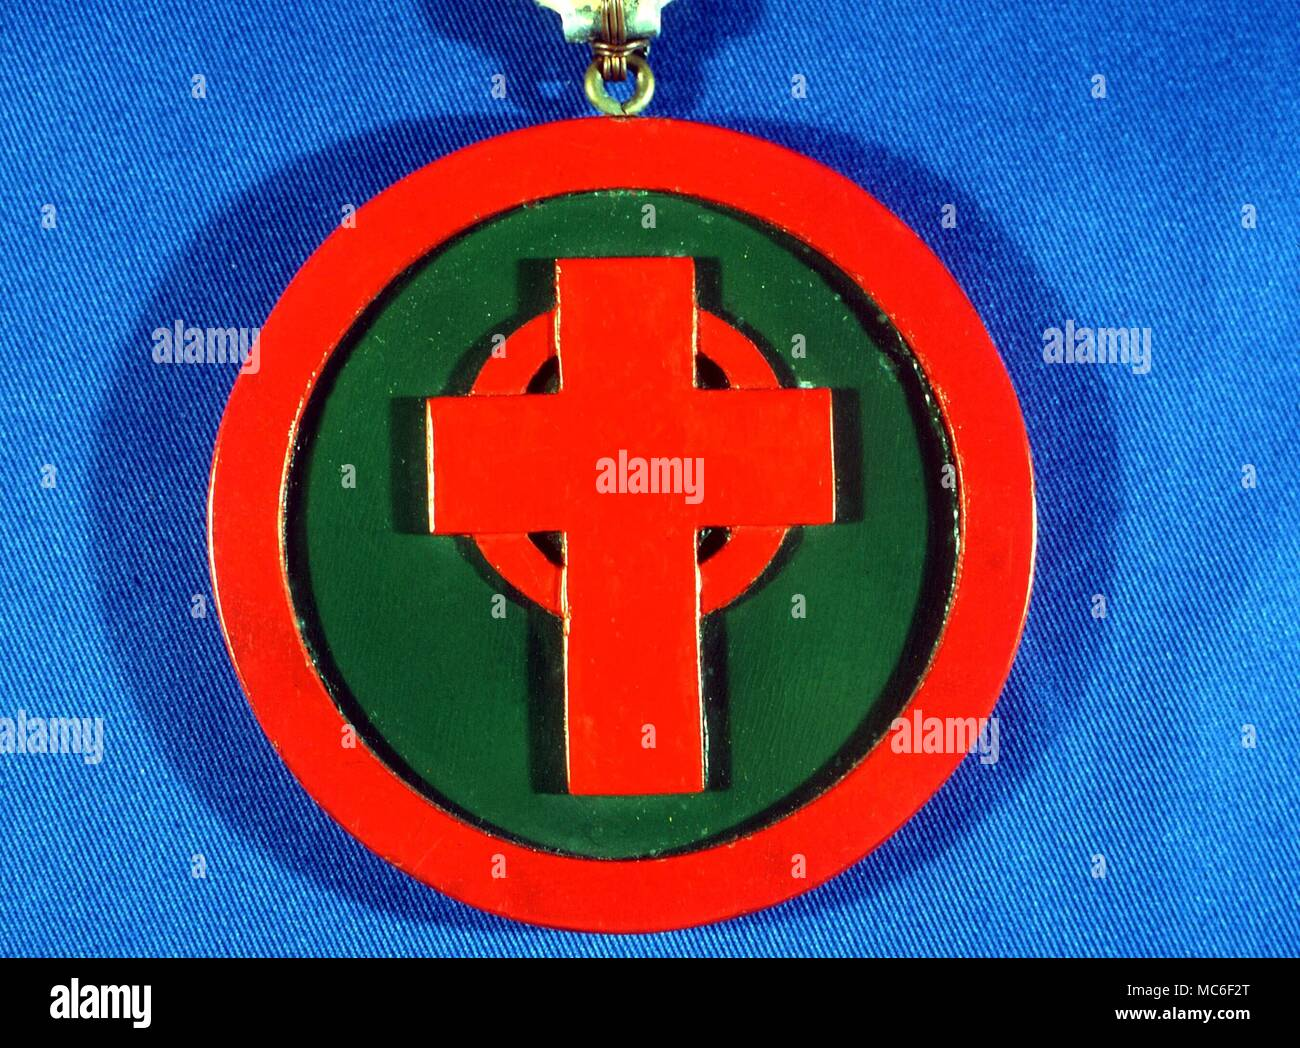 ROSICRUCIAN - ROSY CROSS SYMBOL From a copllection of magical symbols used in the Hermes Lodge of the Stella Matutina.  Lamen of Hierophant, 'Masters and Controls Endeavours of those Seeking Higher Knowledge'.  Red rosy cross on green ground - Stock Image